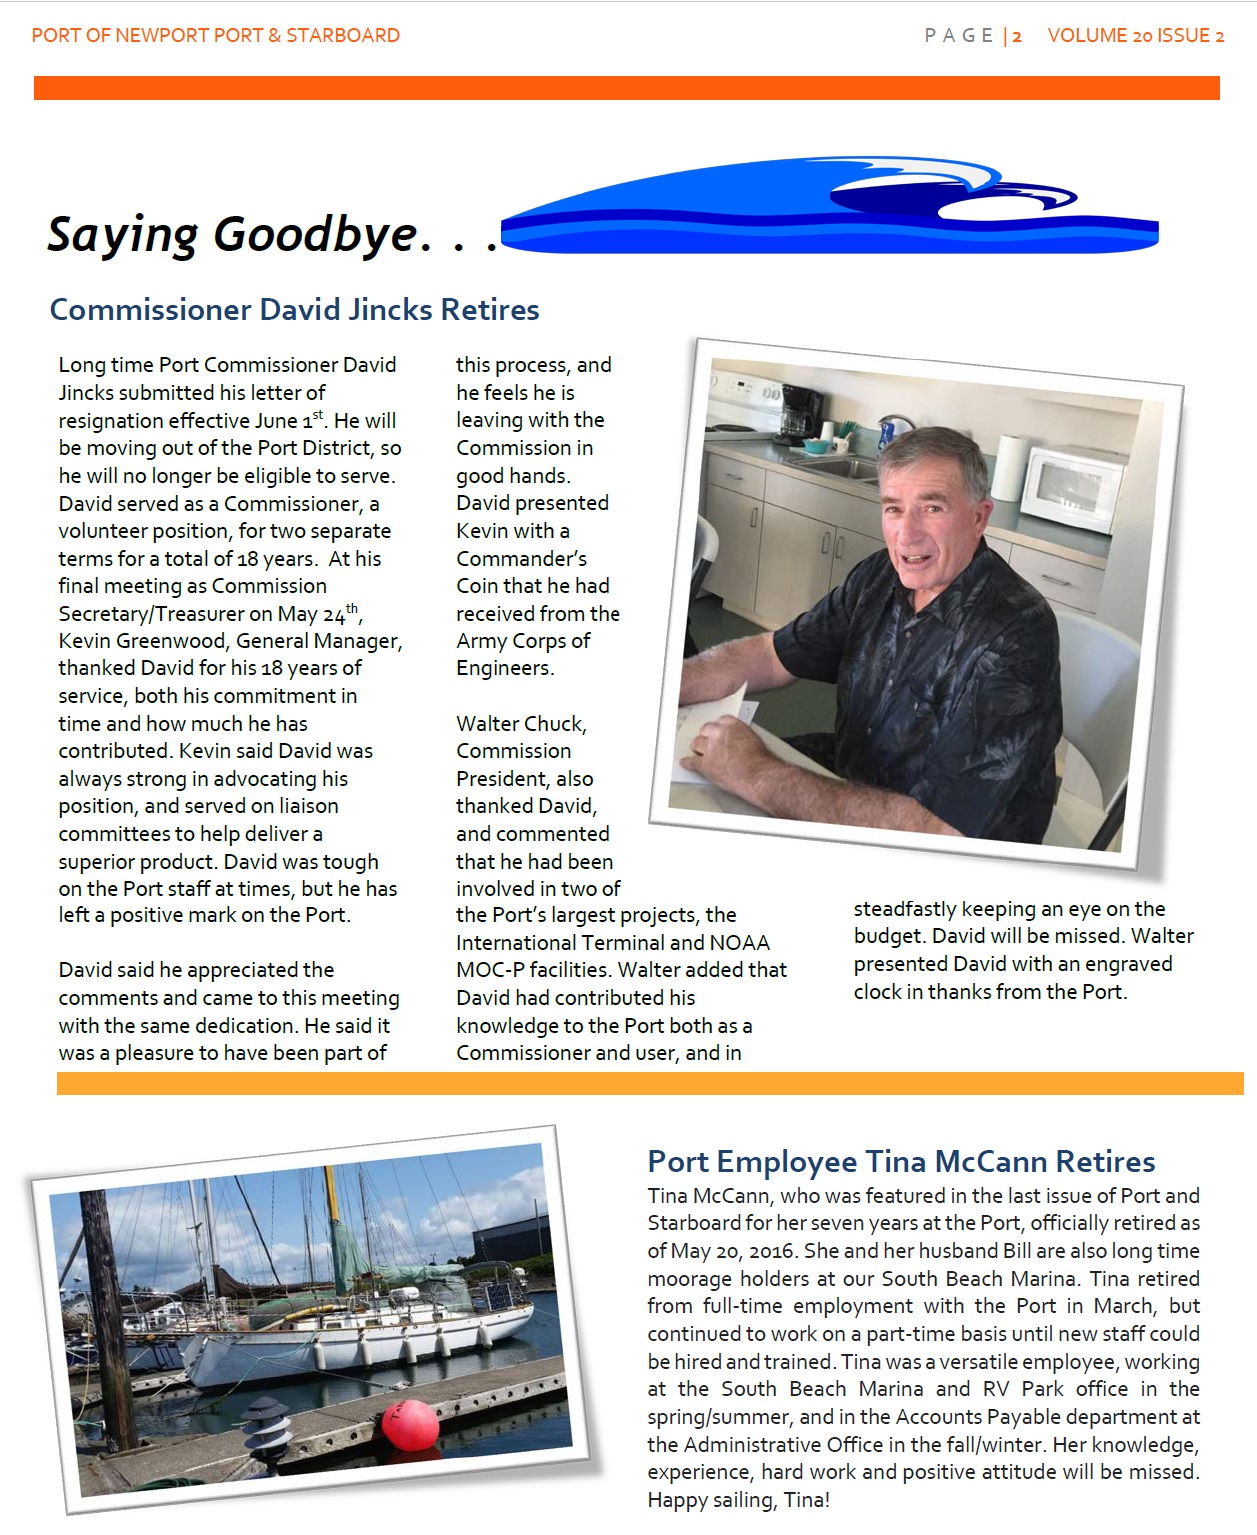 Jun2016 - Port of Newport - Port & Starboard Newsletter Volume 20 Issue 2 online edition 2